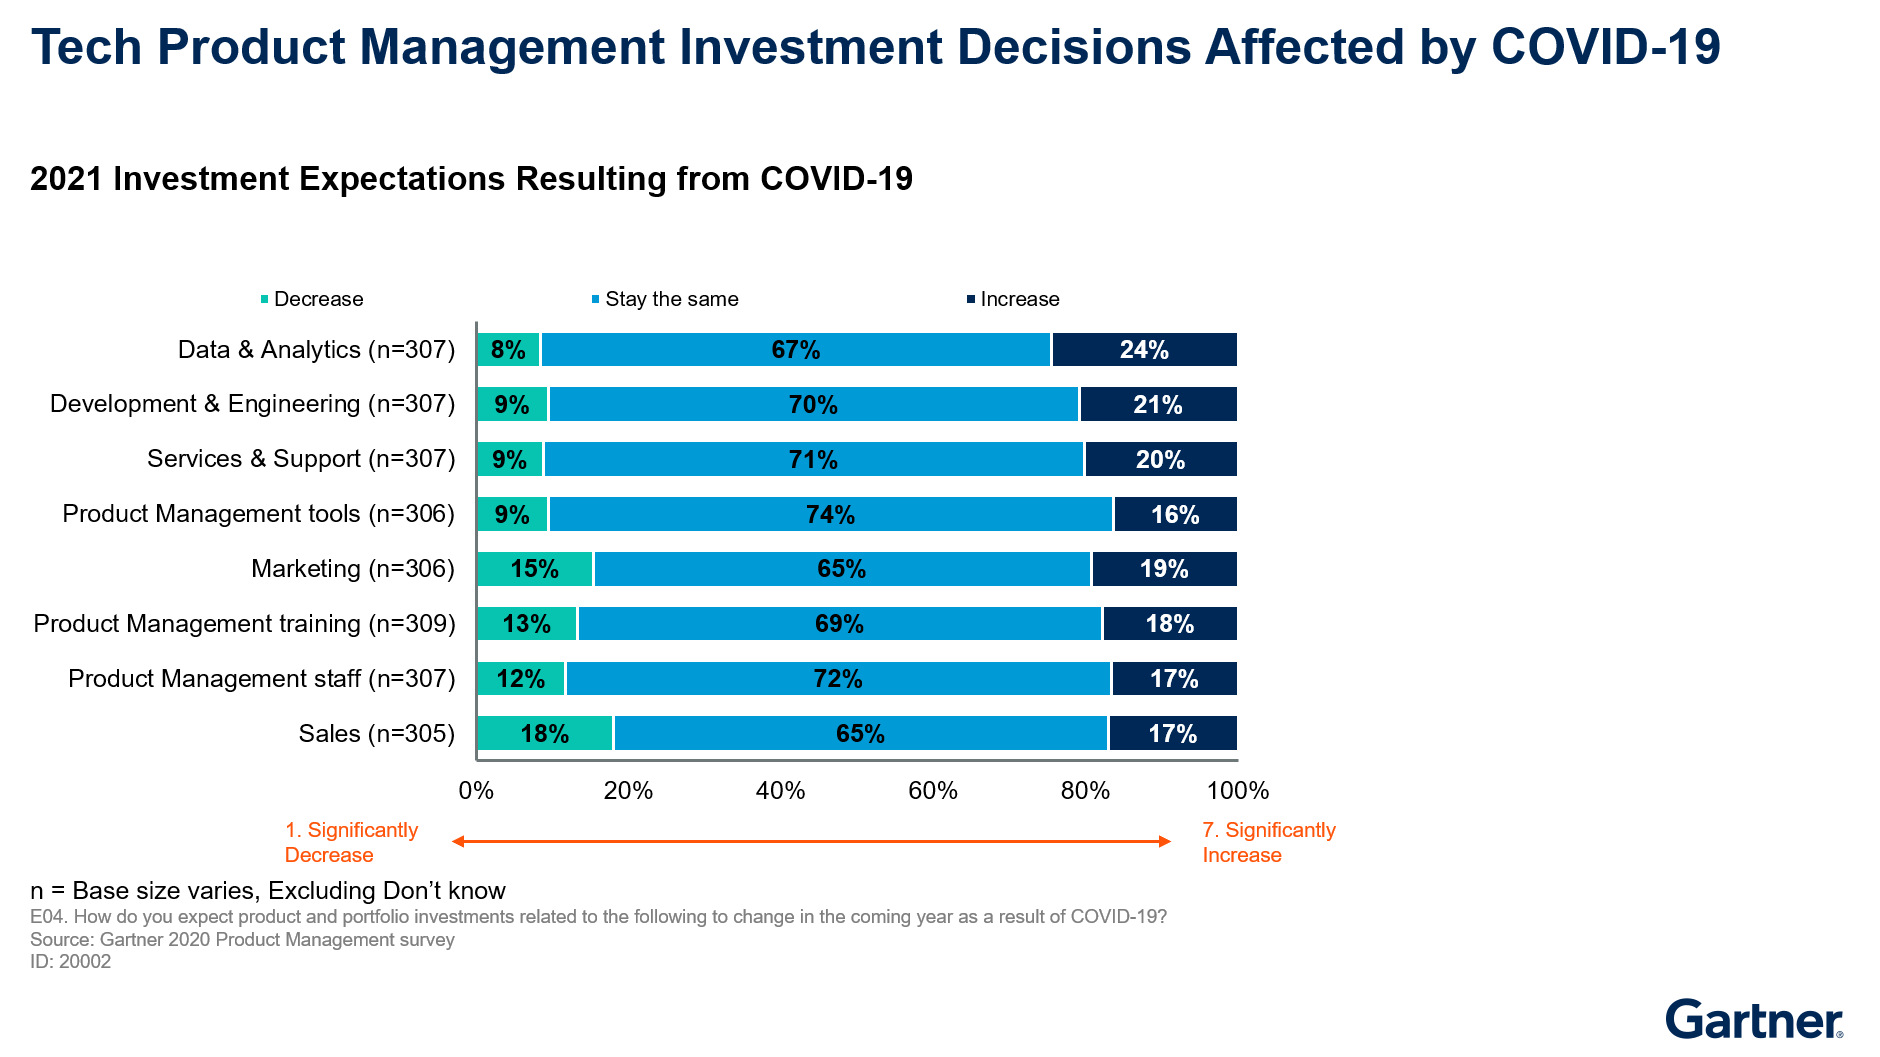 Figure 1. Tech Product Manager Investment Decisions Affected by COVID-19